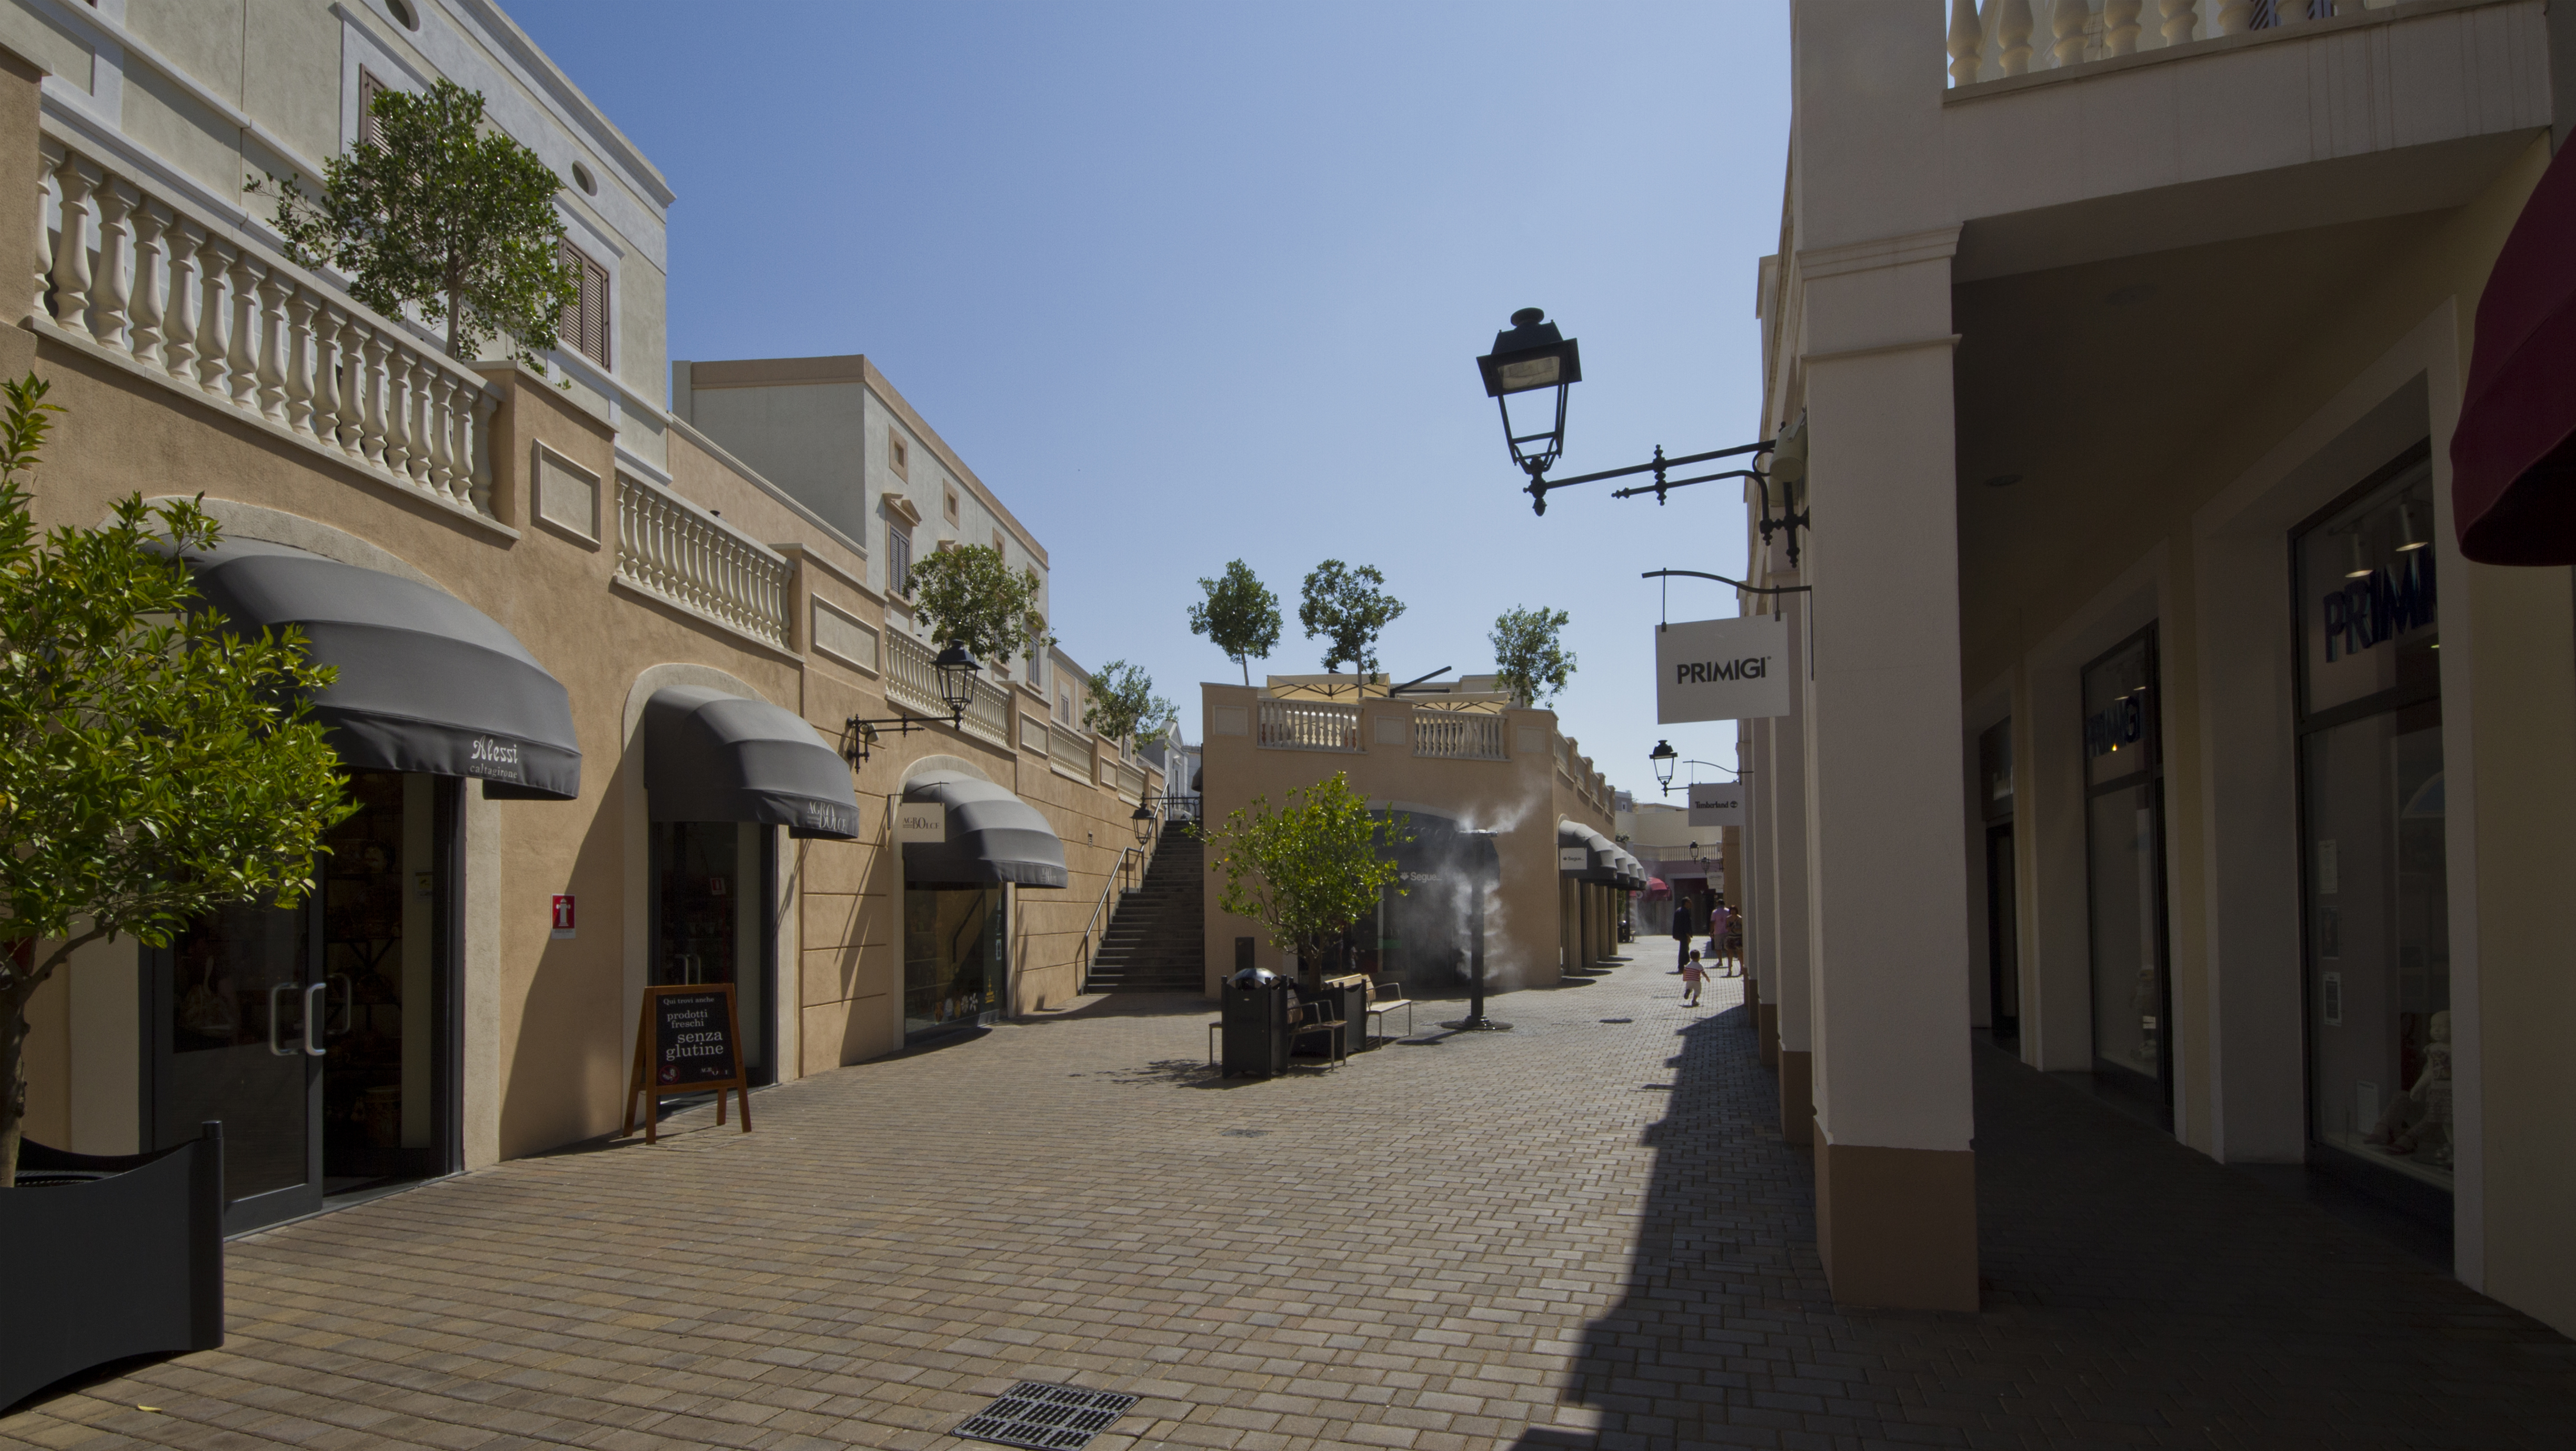 File:Sicilia outlet village - panoramio.jpg - Wikimedia Commons